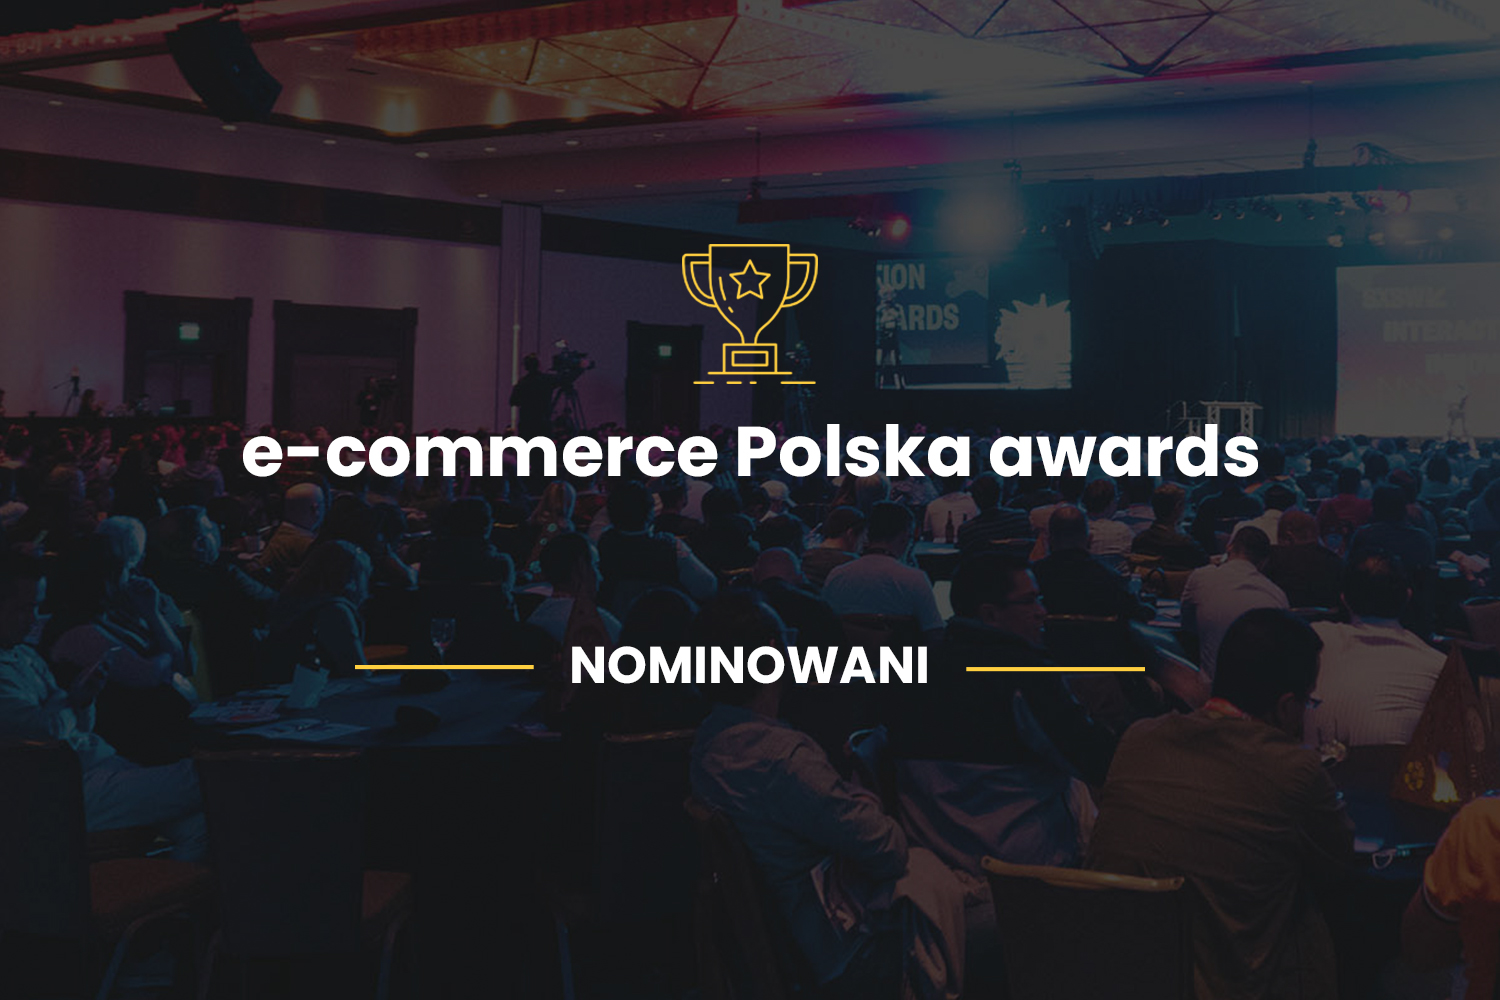 e-commerce Polska awards 2018